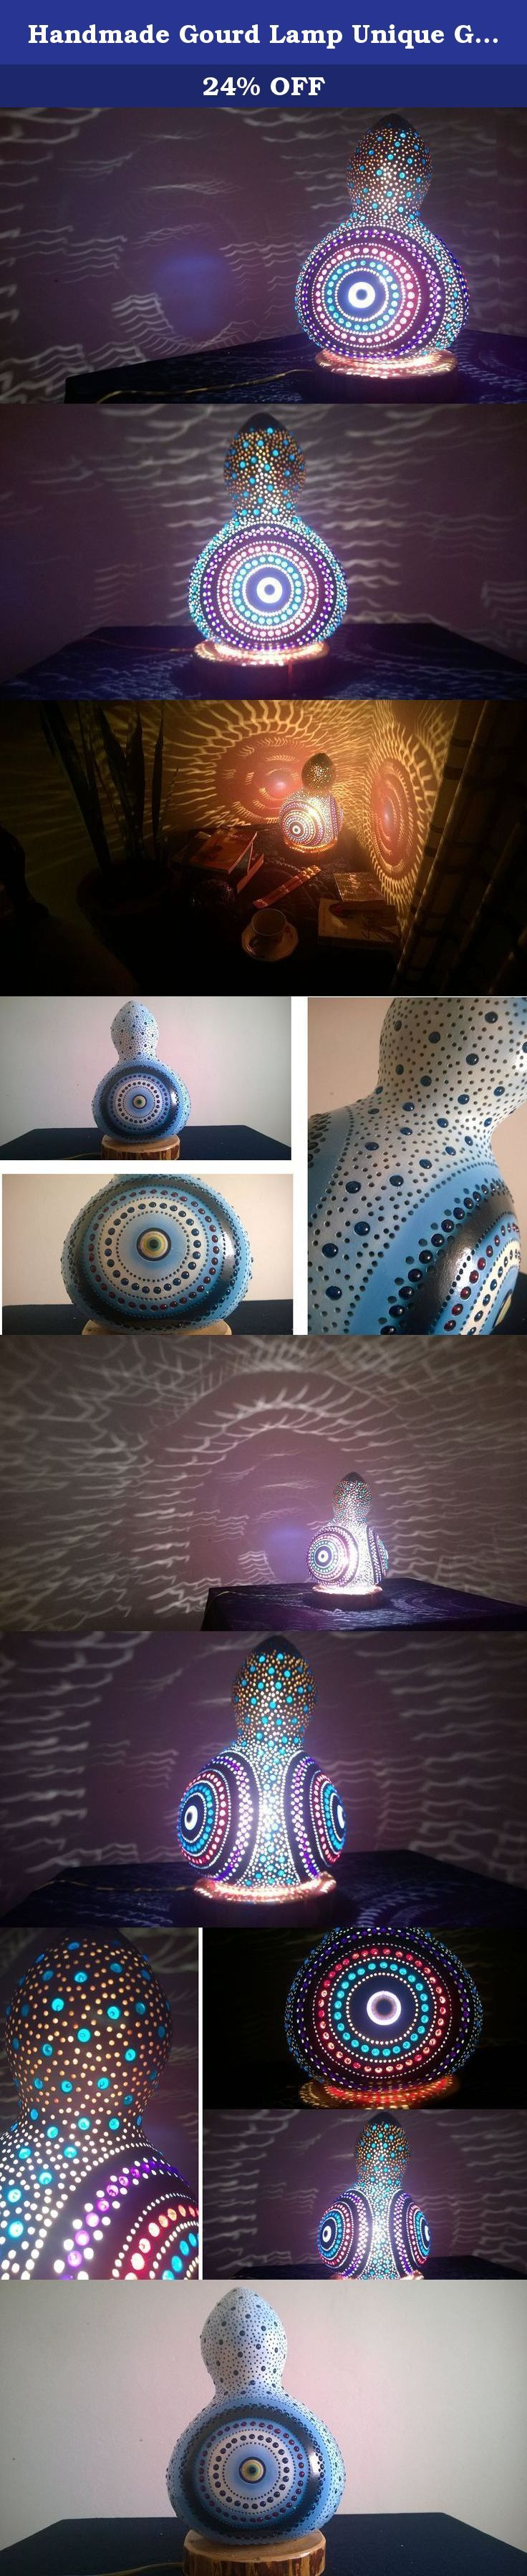 Handmade Gourd Lamp Unique Gifts for Wife Boho Lights Boho Lantern Boho Lamp Boho Room Decor Housewarming Gift Ideas. Welcome. My objective is to send you a unique, truely handmade, authentic product from the Mediterranean with a reasonable cost. So please read the next three pharagraphs carefully before making a decision. I work with selected farmers who water calabash excessively (the main material) and feed them with goat based fertilisers so that they grow up strong and thick. But…